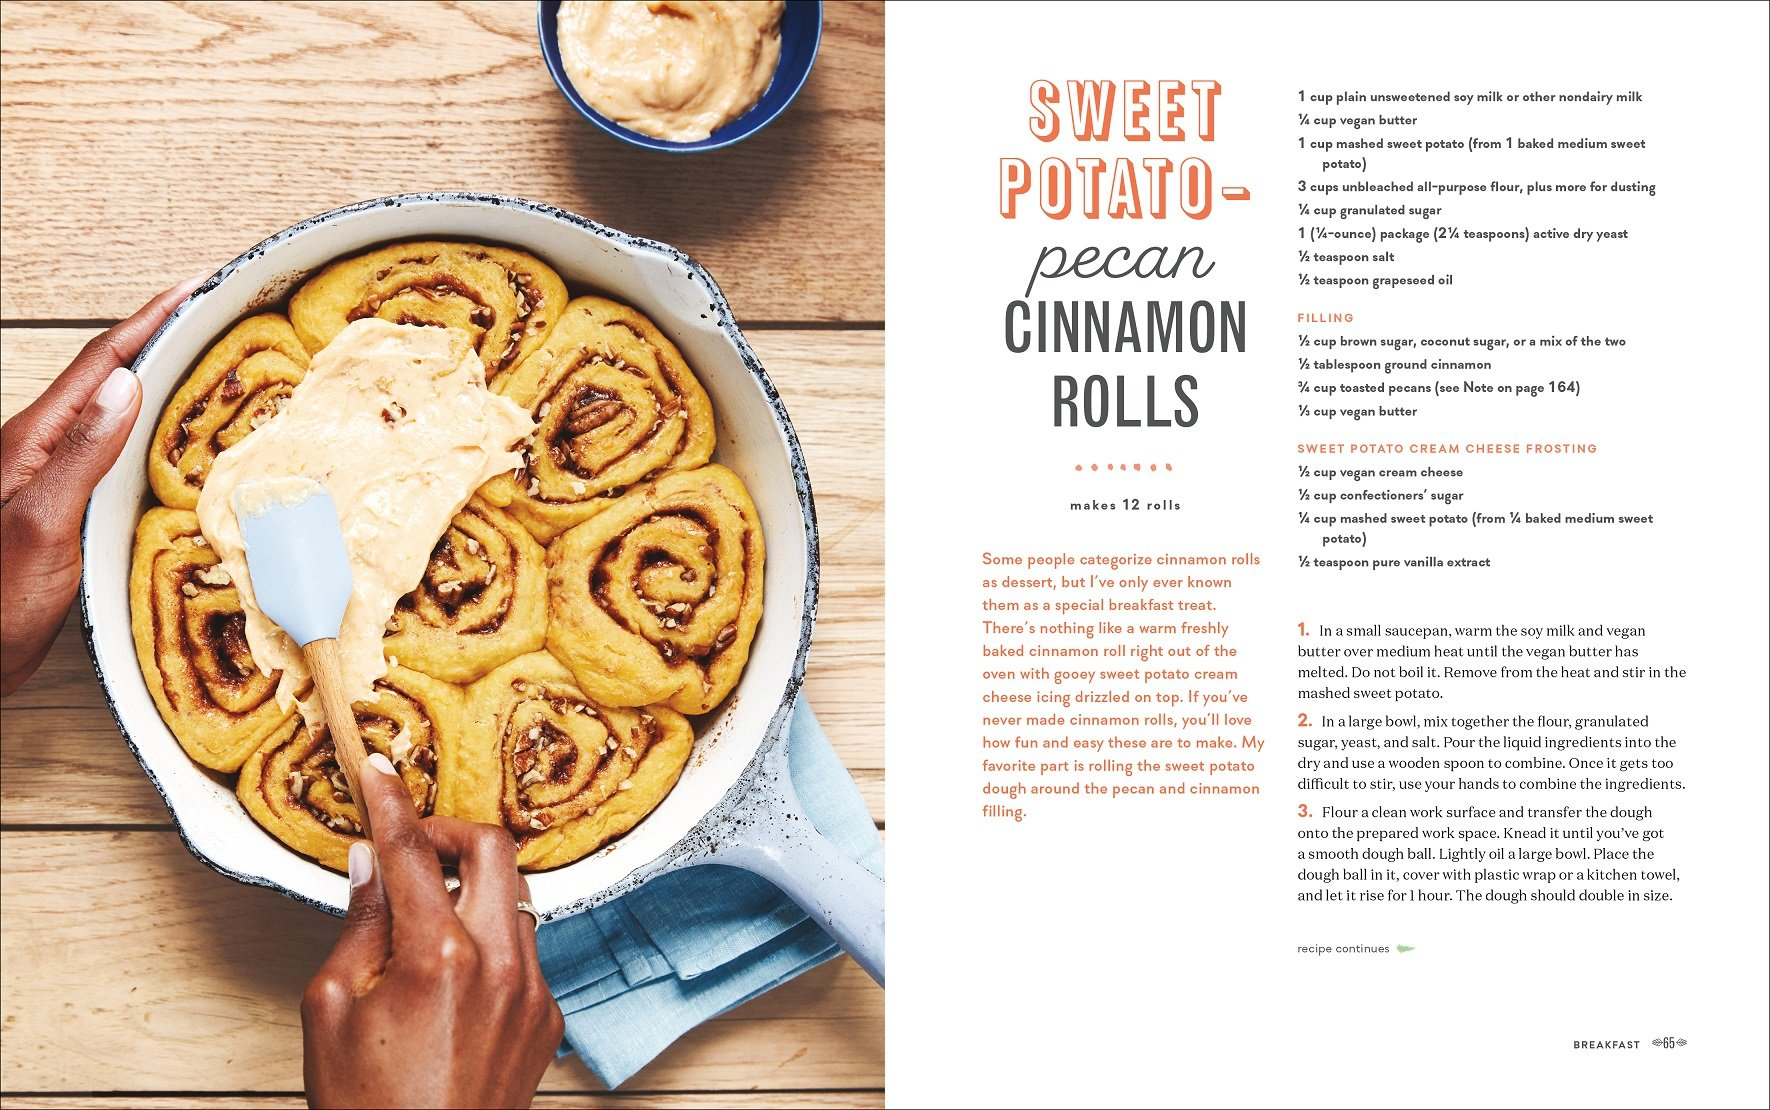 Sweet potato soul 100 easy vegan recipes for the southern flavors sweet potato soul 100 easy vegan recipes for the southern flavors of smoke sugar spice and soul jenne claiborne 9780451498892 amazon books fandeluxe Image collections